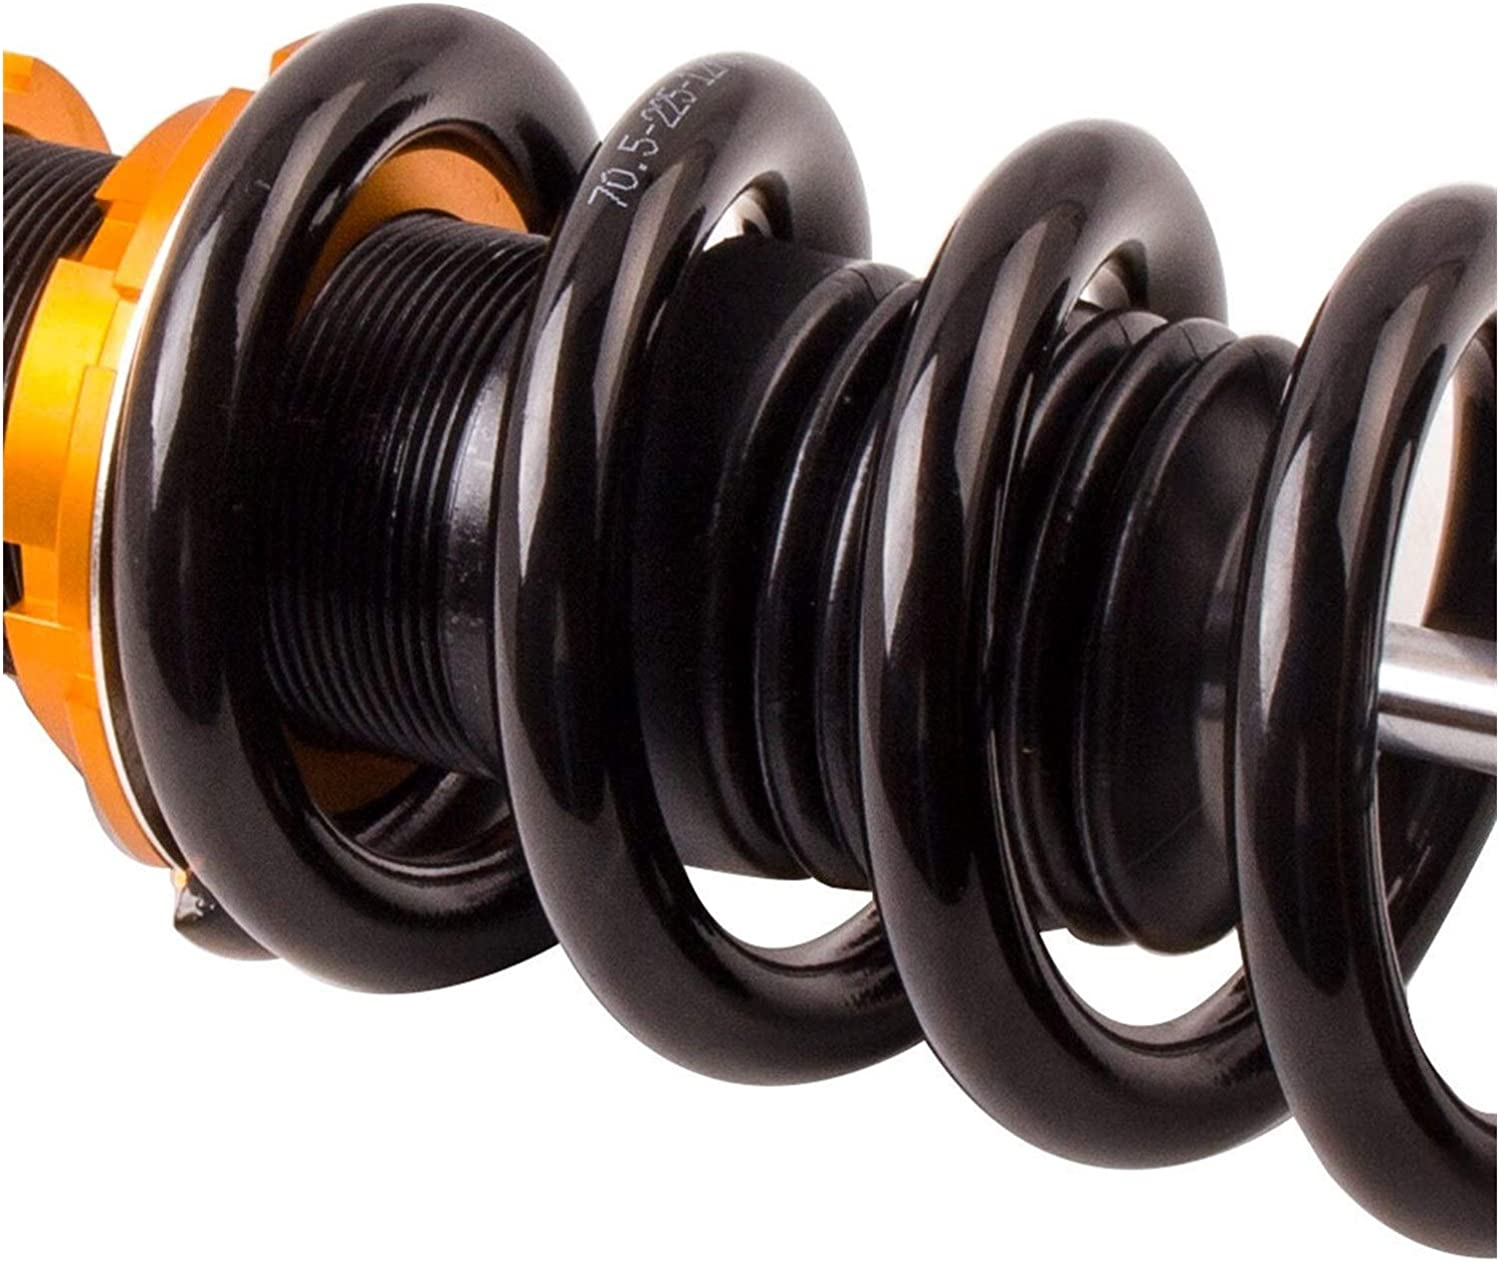 FGYUI Amortisseur de Voiture Shock Absorber fit for Toyota Supra MA70 JZA70 MK3 MKIII 87-92 Amortisseurs for JZA70 MA70 7MGTE Avant Arri/ère Camber Plate